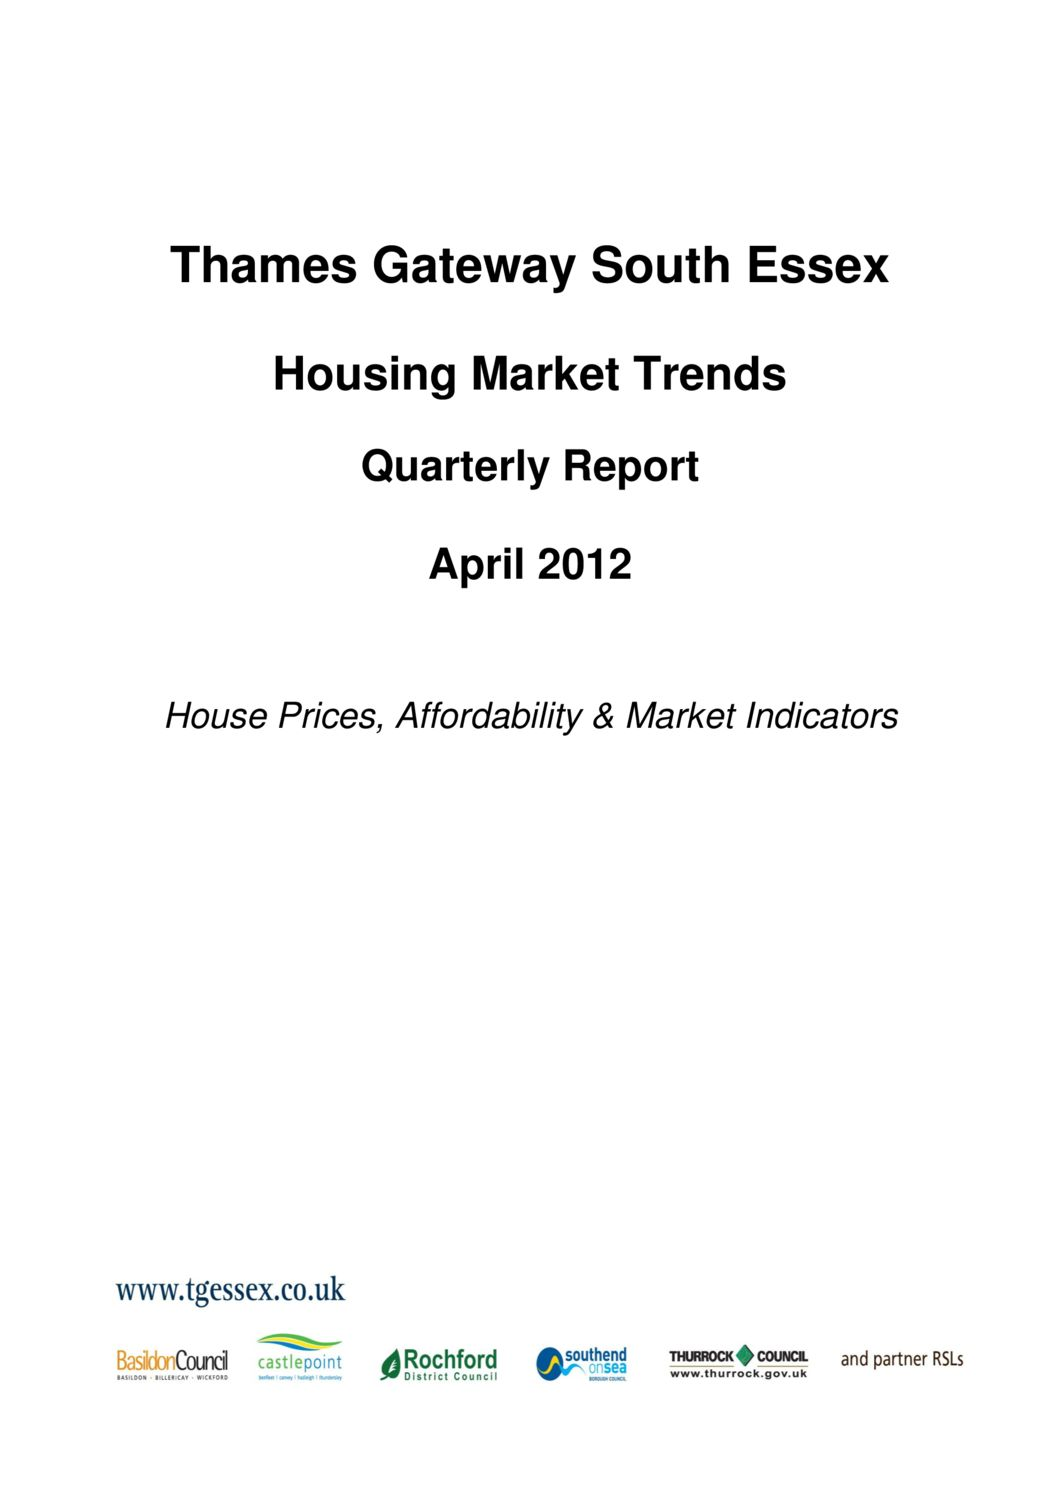 SE Housing Market Trends Quarterly Report April 2012